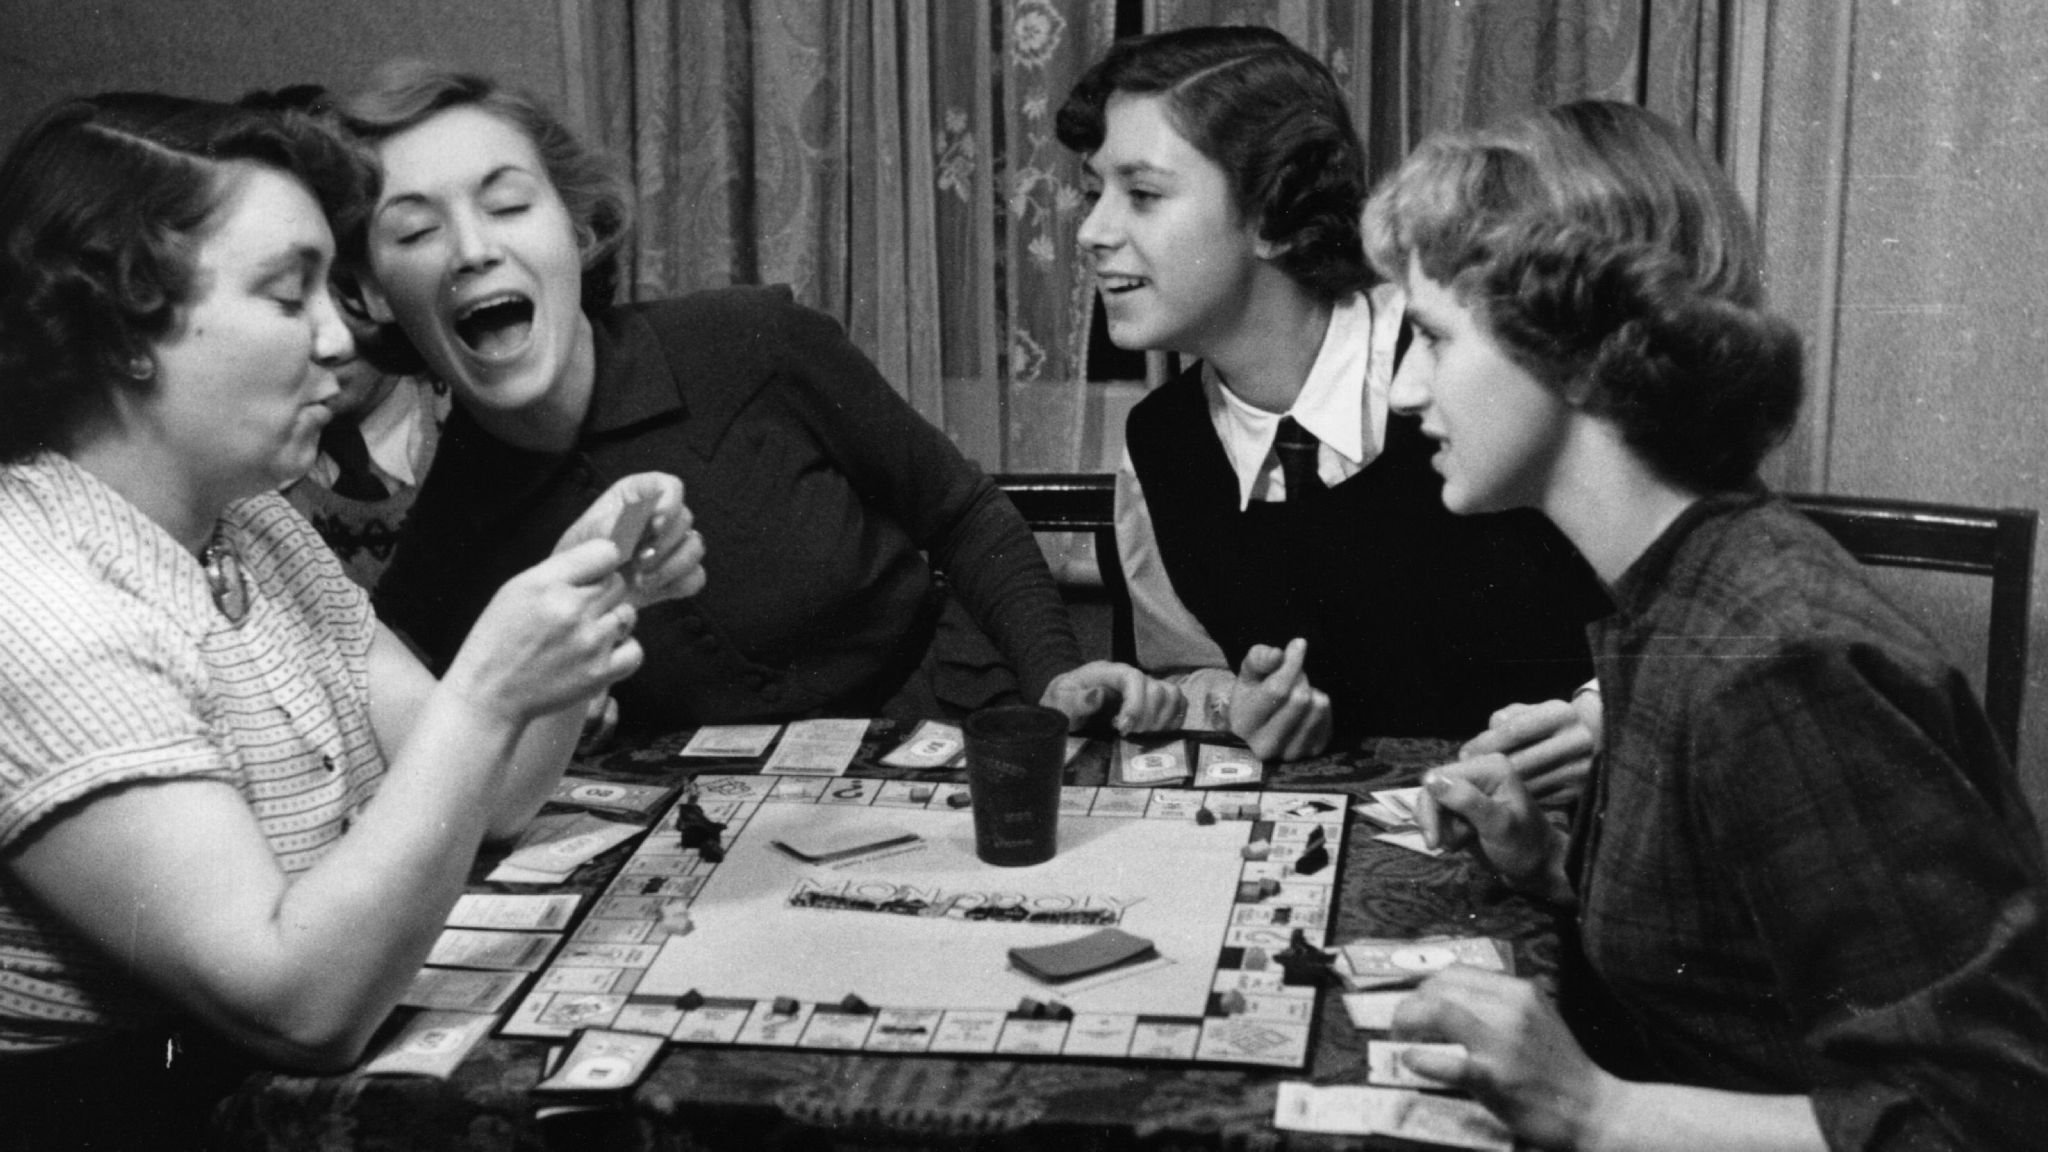 The games that smart people play